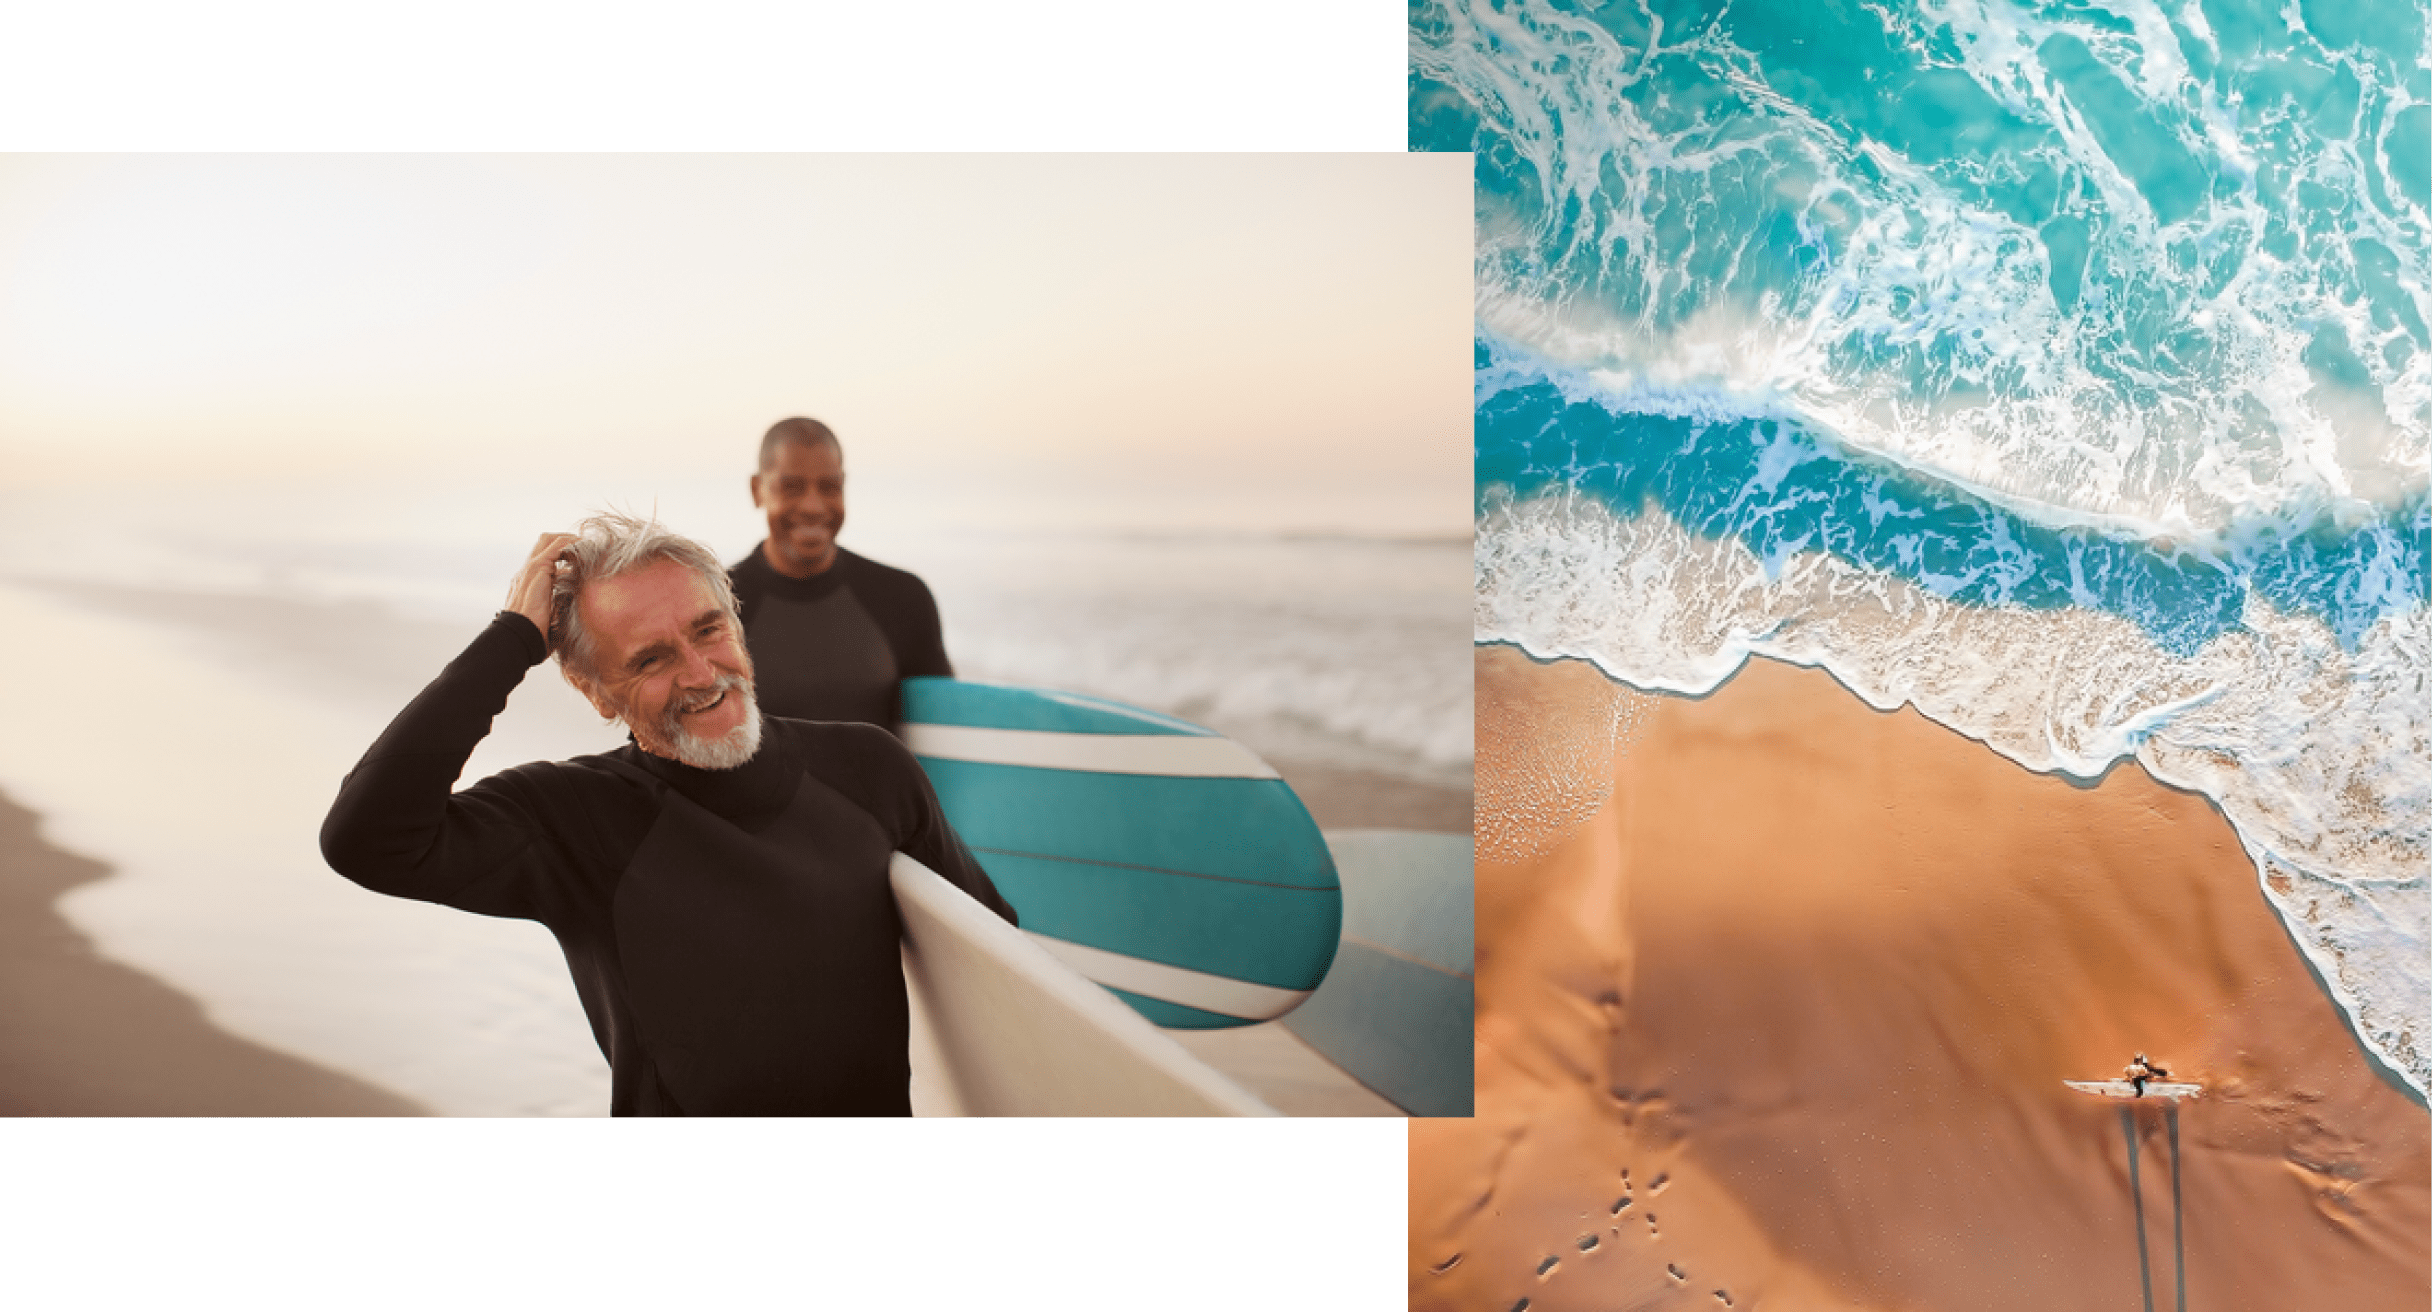 Two images showing an older White male and younger Black male in wetsuits smile and carry surfboards next to the ocean, and an aeriel view of the blue-green ocean meeting smooth brown sand as a lone surfer carries a surfboard near the water